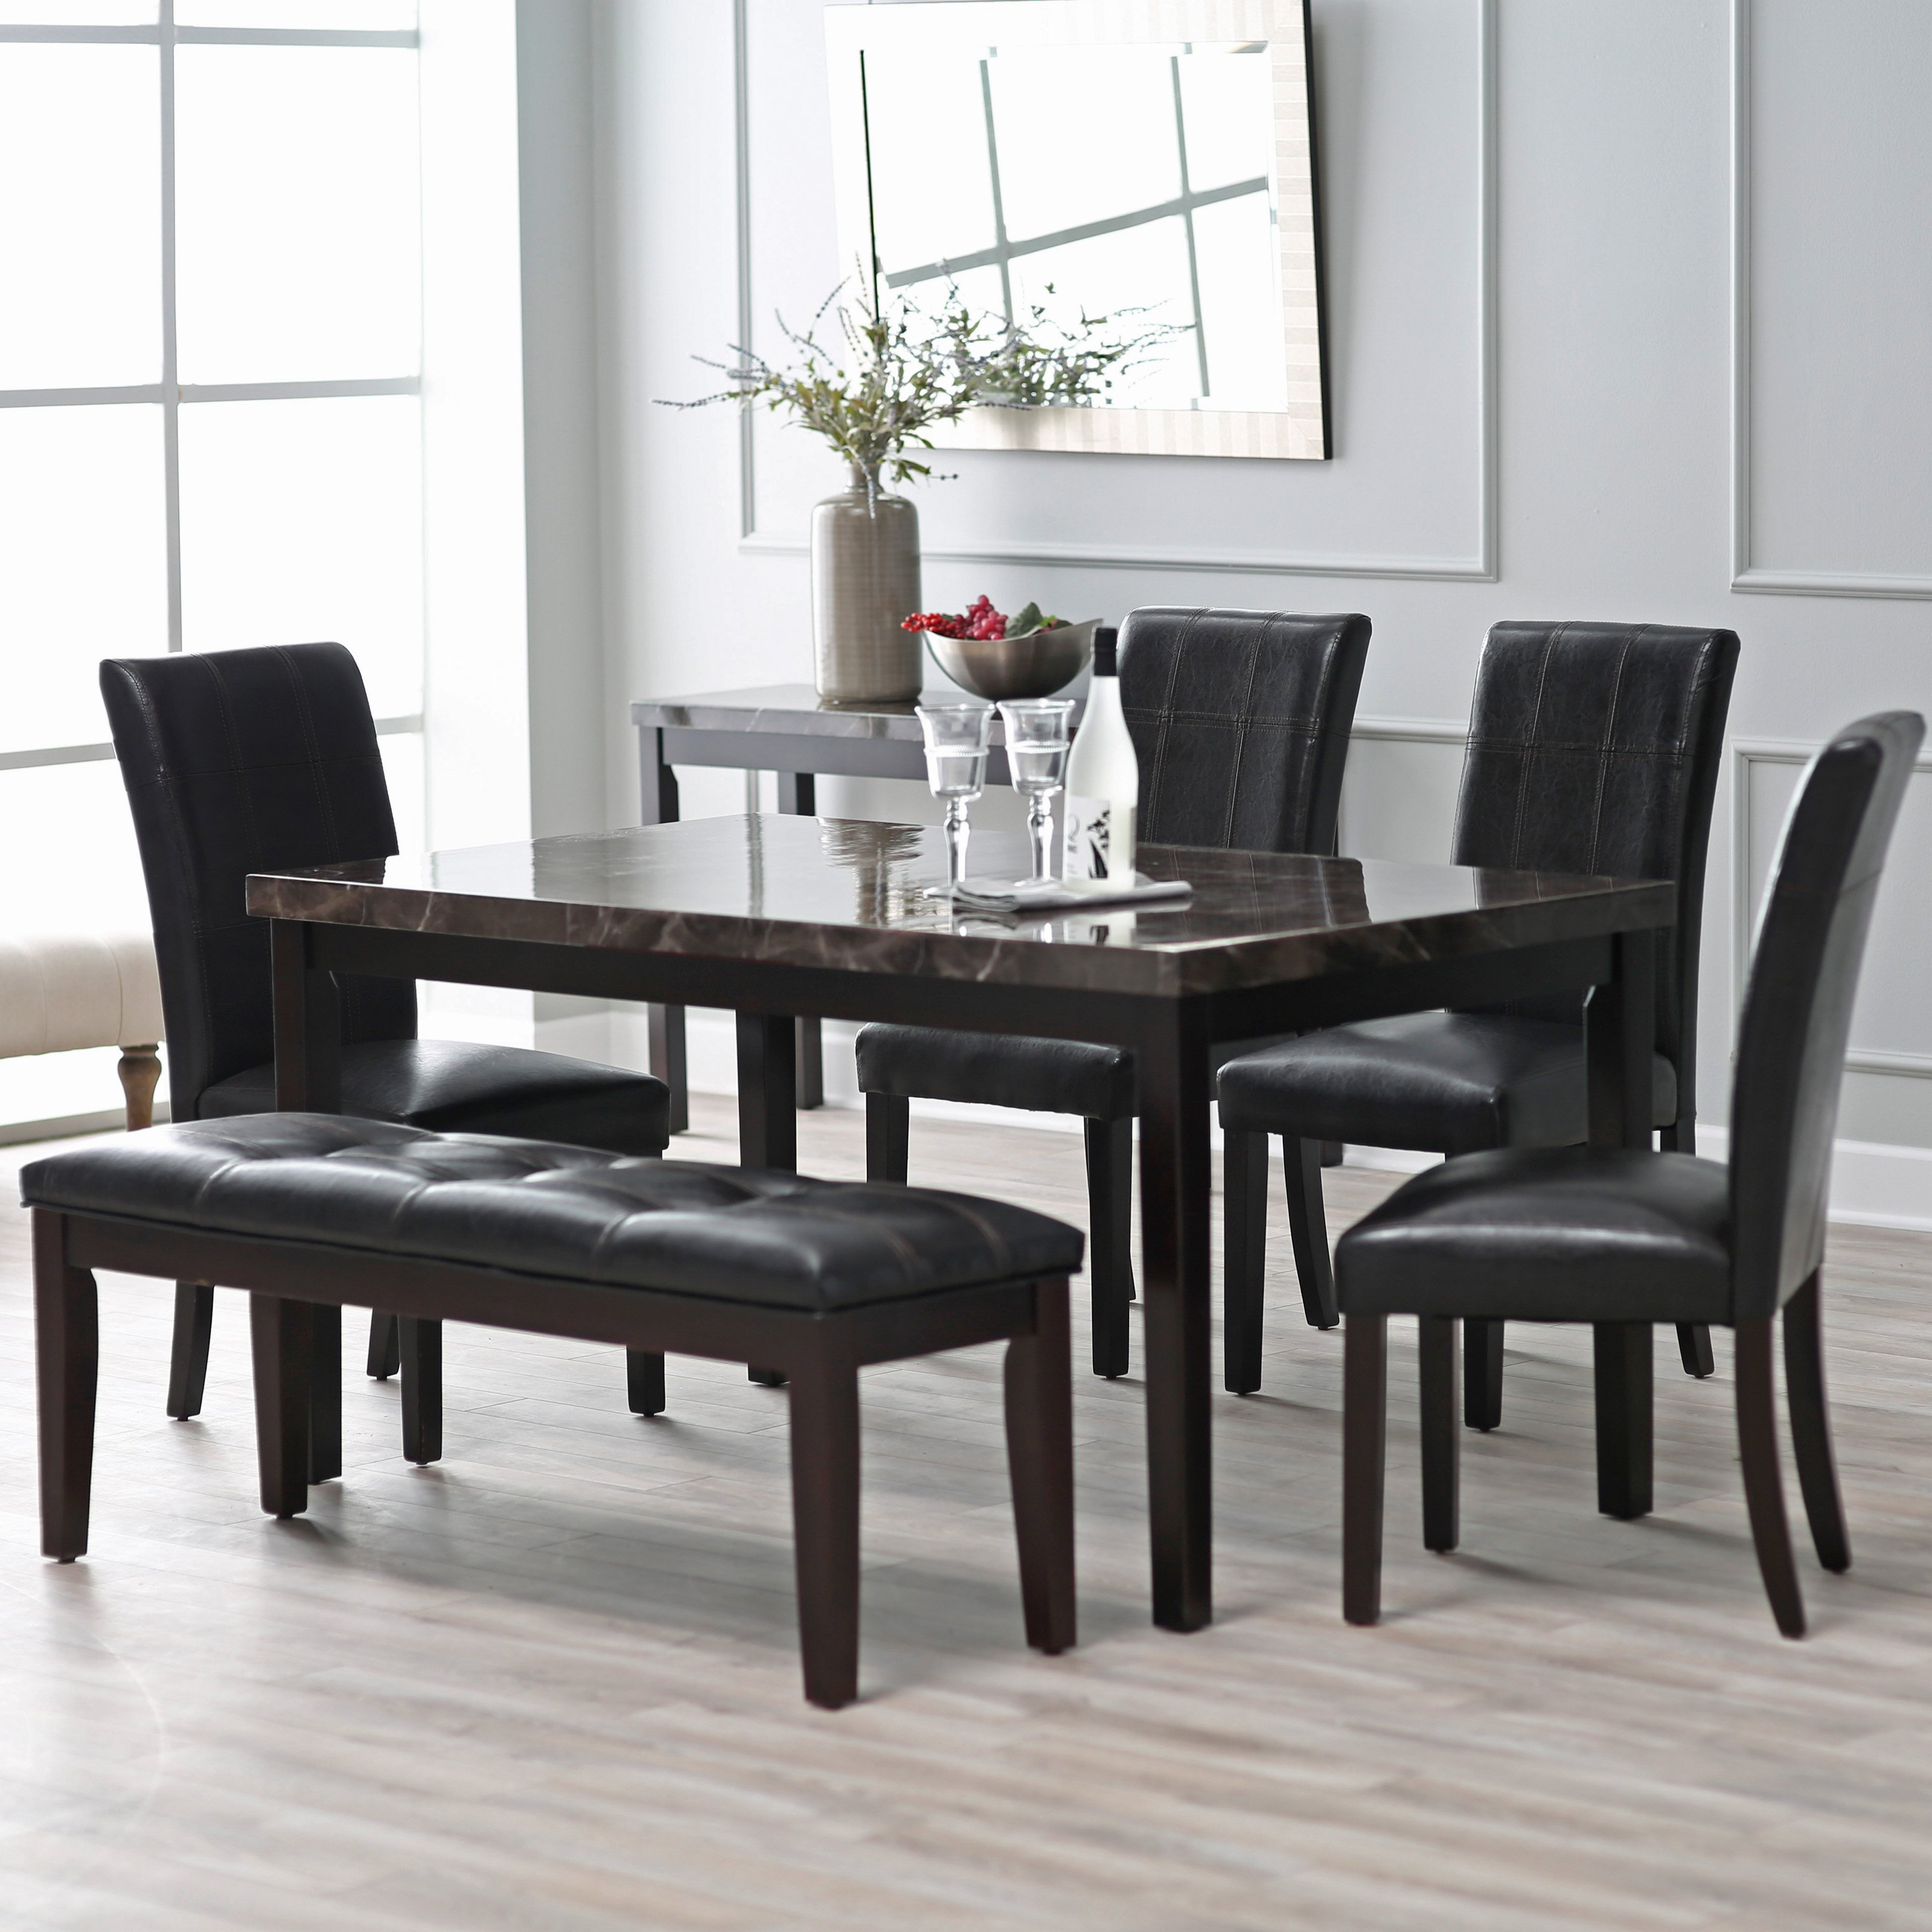 Furniture Modern Dining Table Set Unique On Furniture Lovely 15 Contemporary Kitchen And Chair Modern Dining Table Set Magnificent On Furniture And Ideas Sets Jherievans 24 Modern Dining Table Set Contemporary On